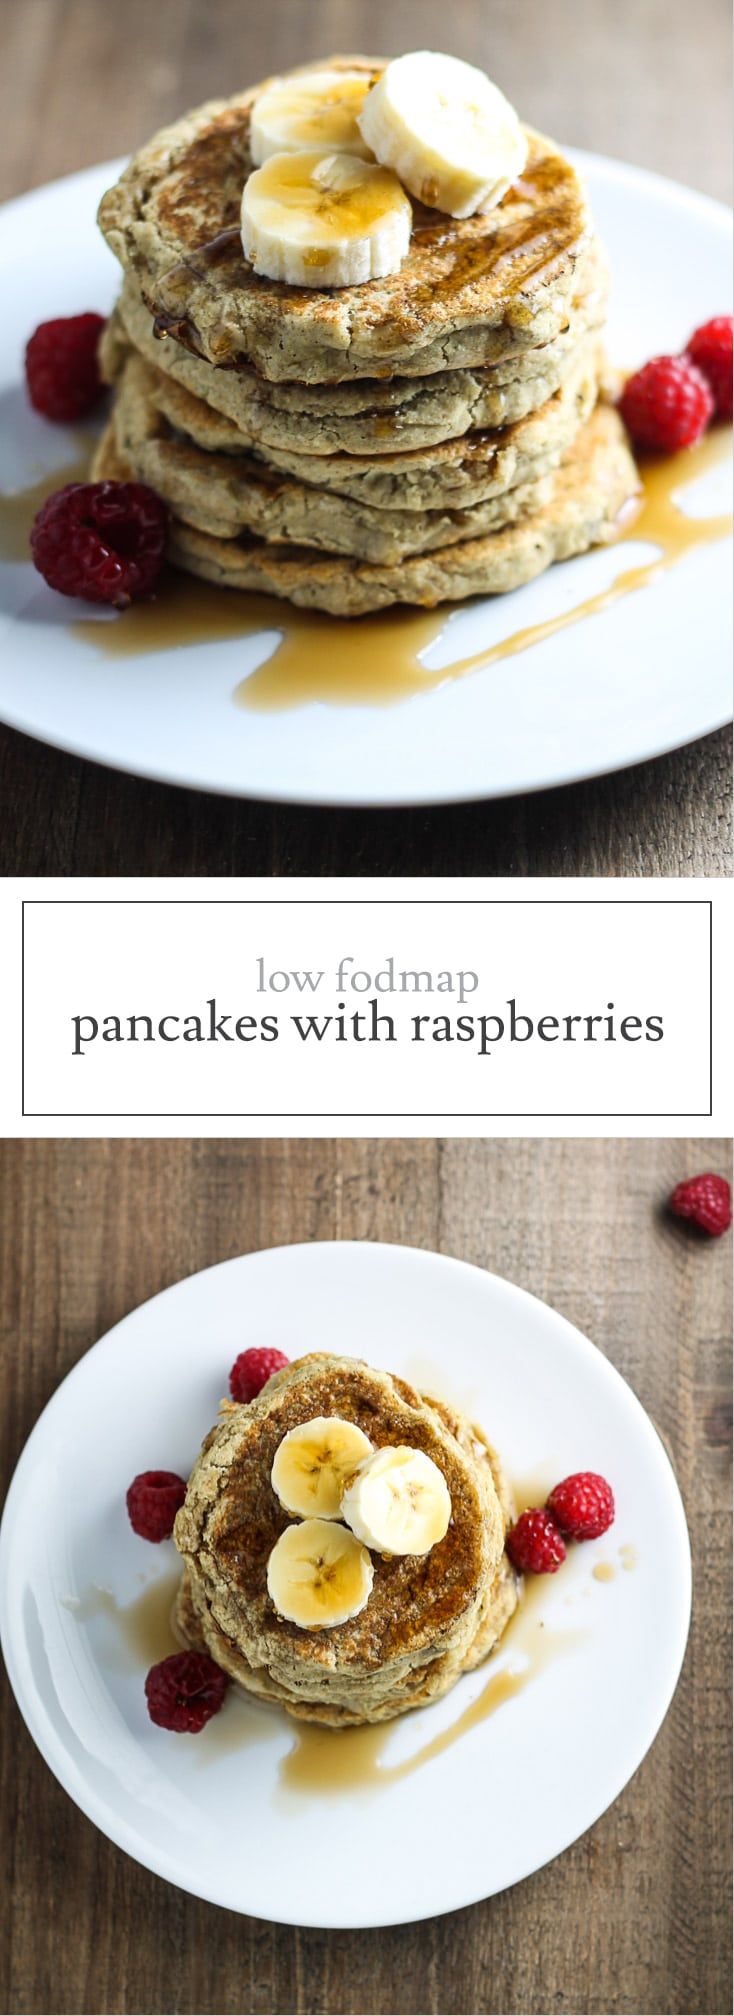 With only a handful of ingredients, these Low FODMAP Pancakes with Raspberries will quickly become a breakfast favorite!